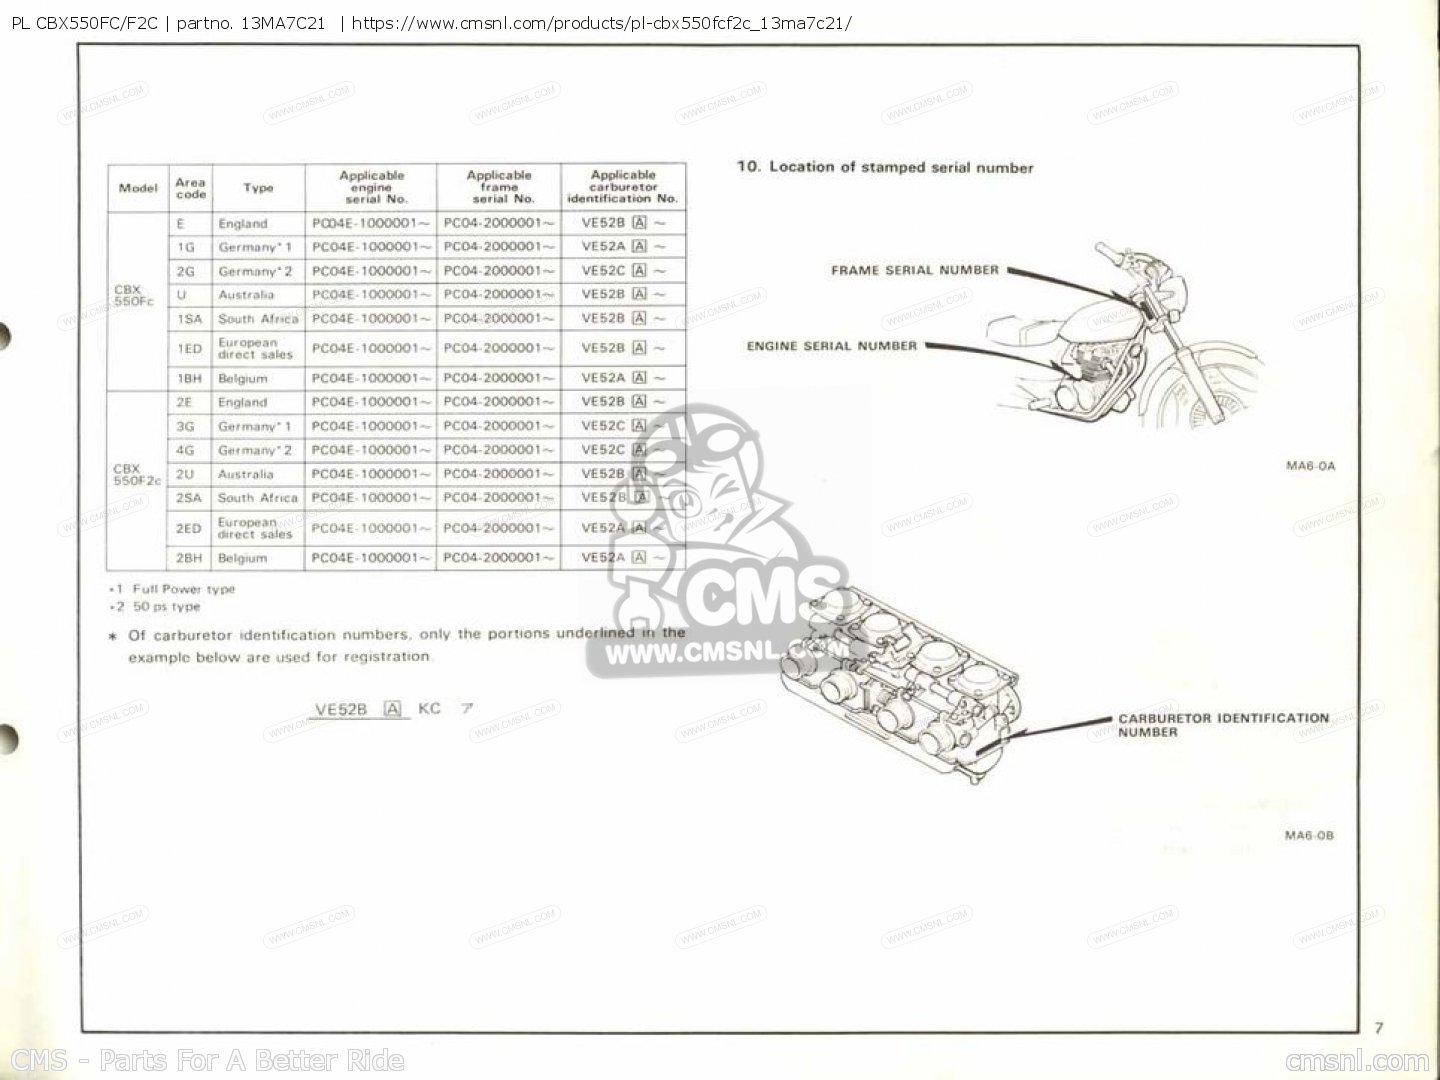 Pl Cbx550fc/f2c Parts Manuals 13MA7C21